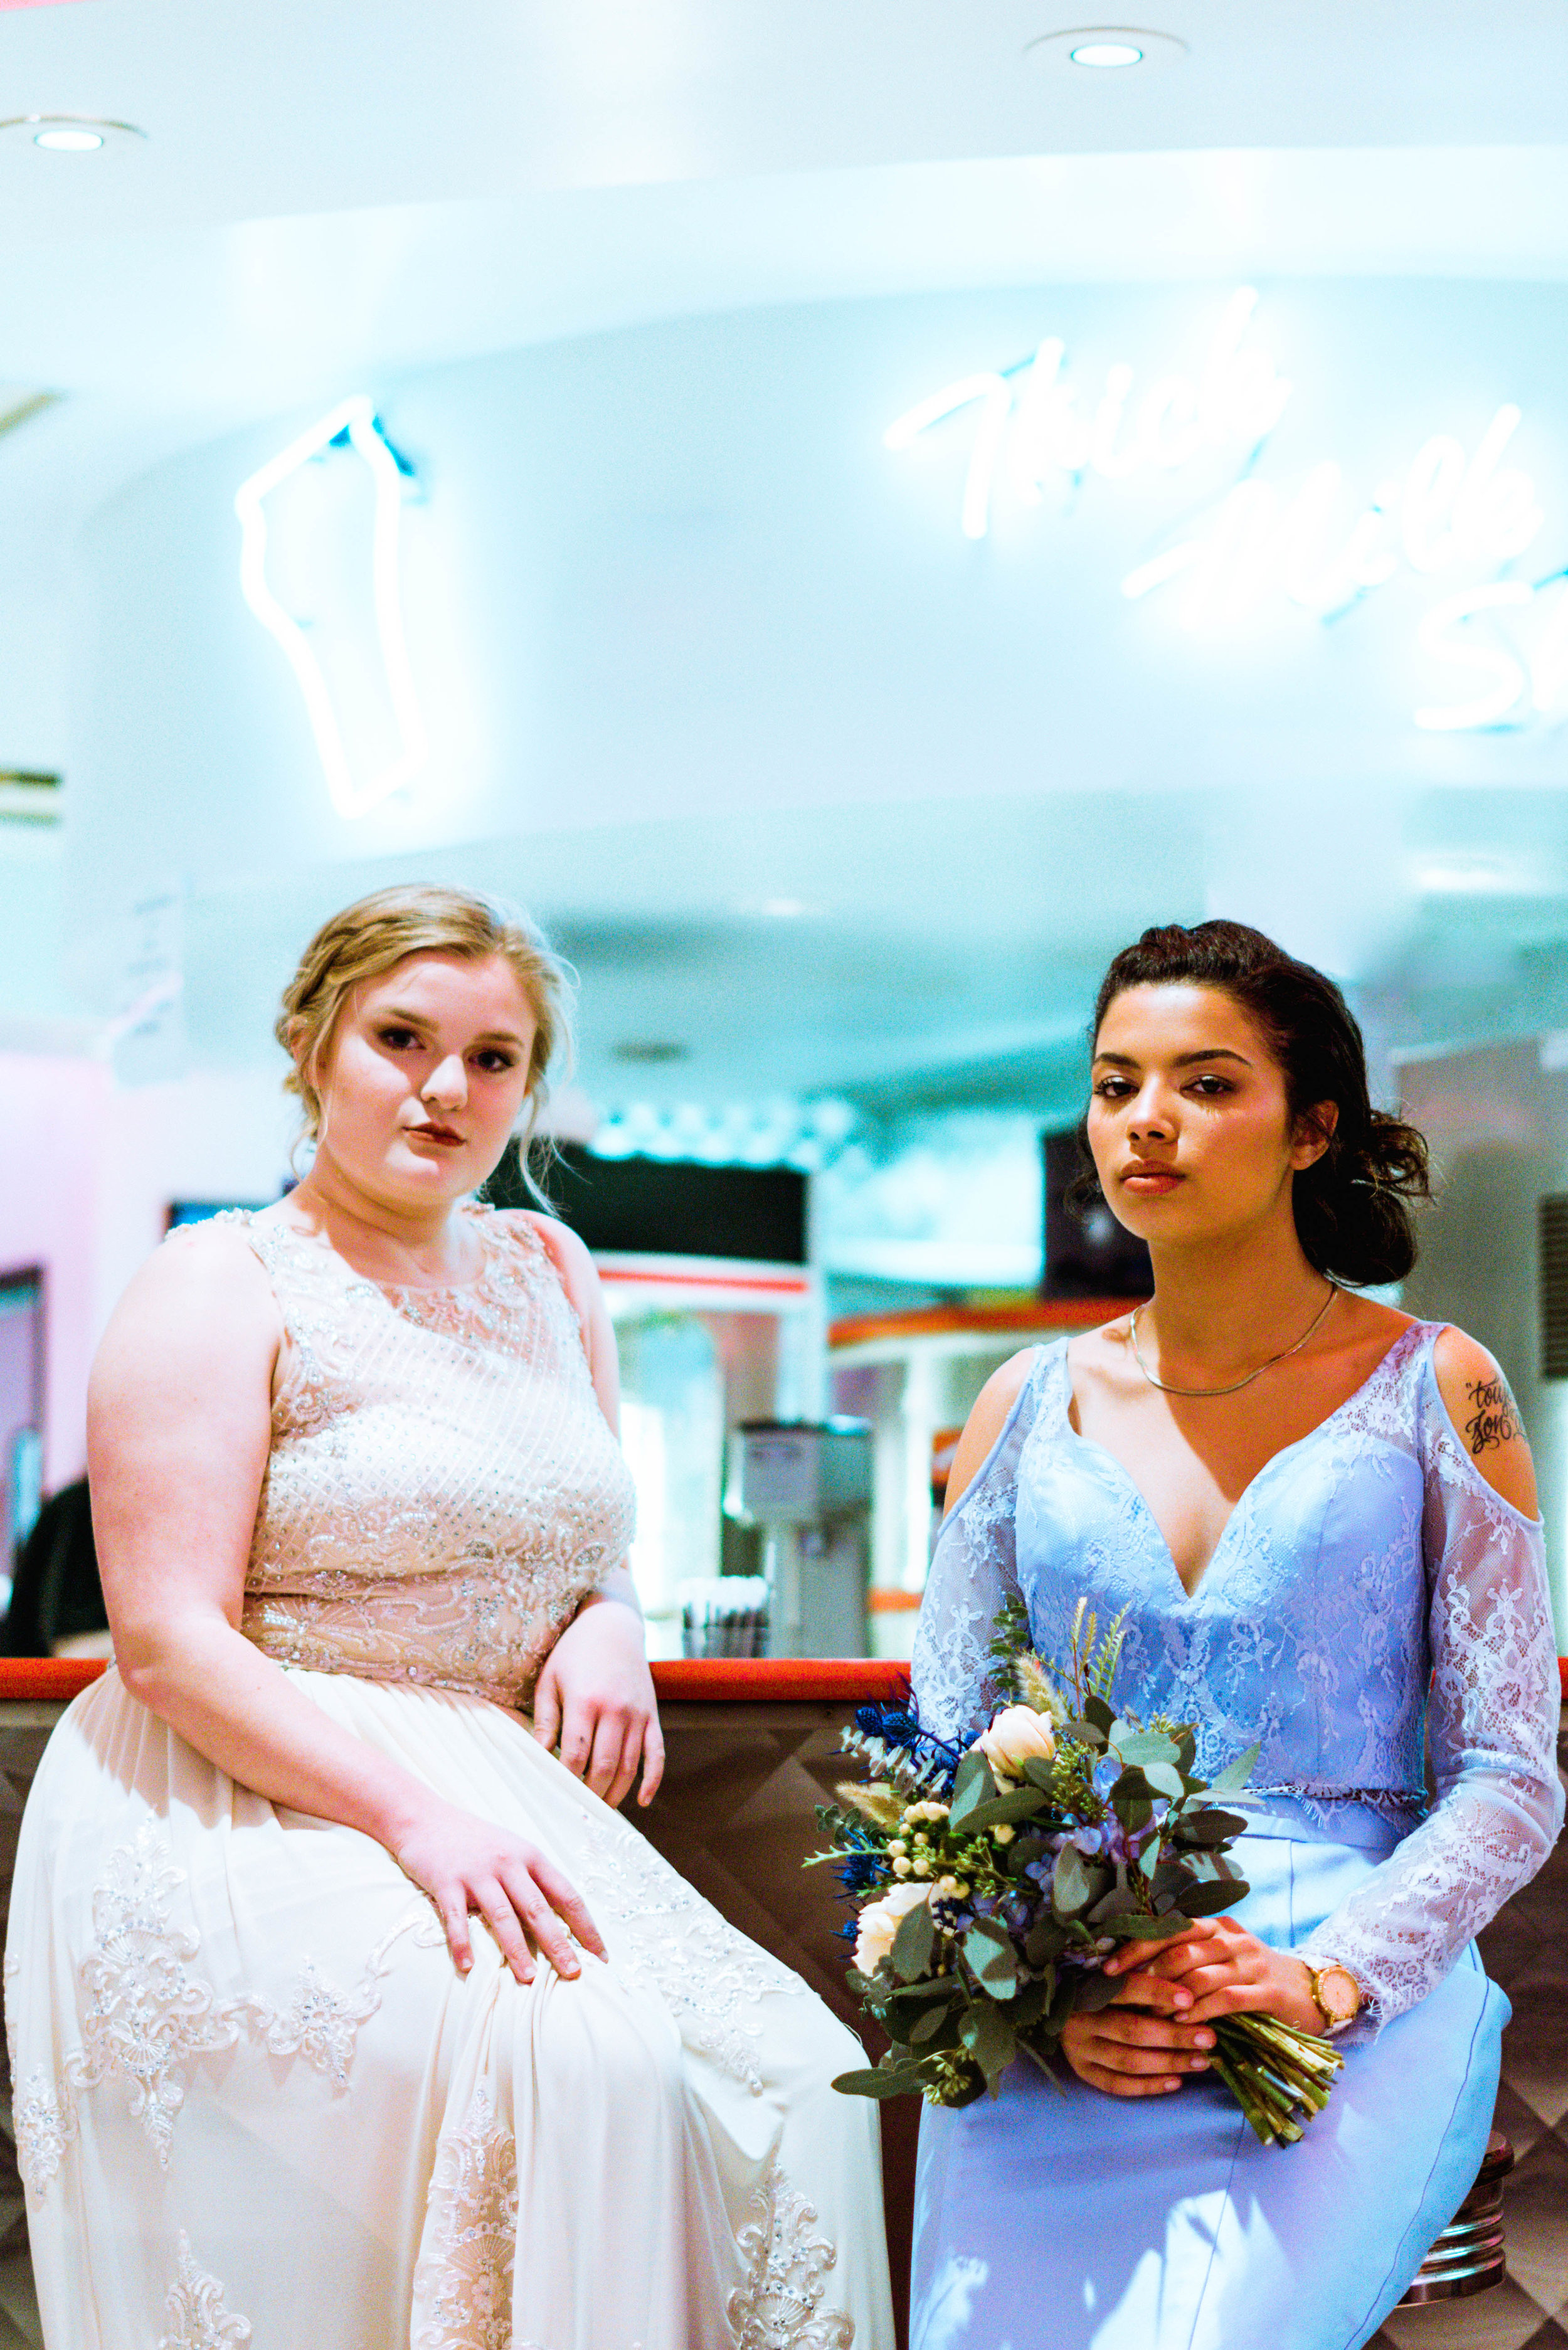 Prom 50's Diner Styled Photo Session